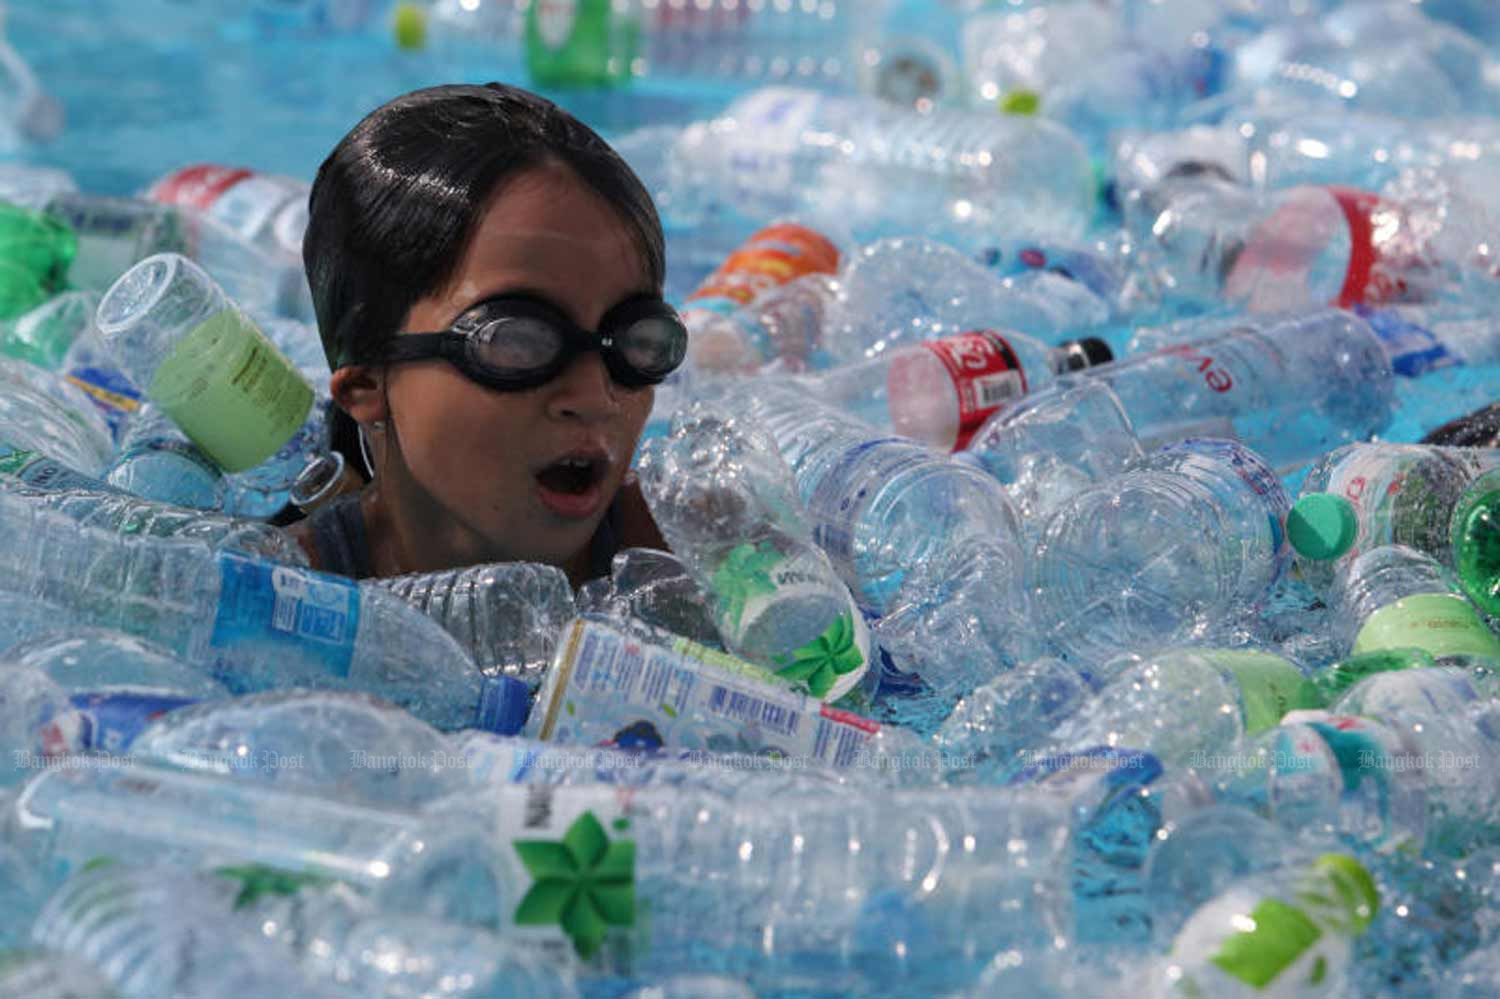 A school in Bangkok has students swim among plastic bottles to create awareness of plastic waste in oceans, on June 8 - the World Oceans Day. (Photo by Wichan Charoenkiatpakul)